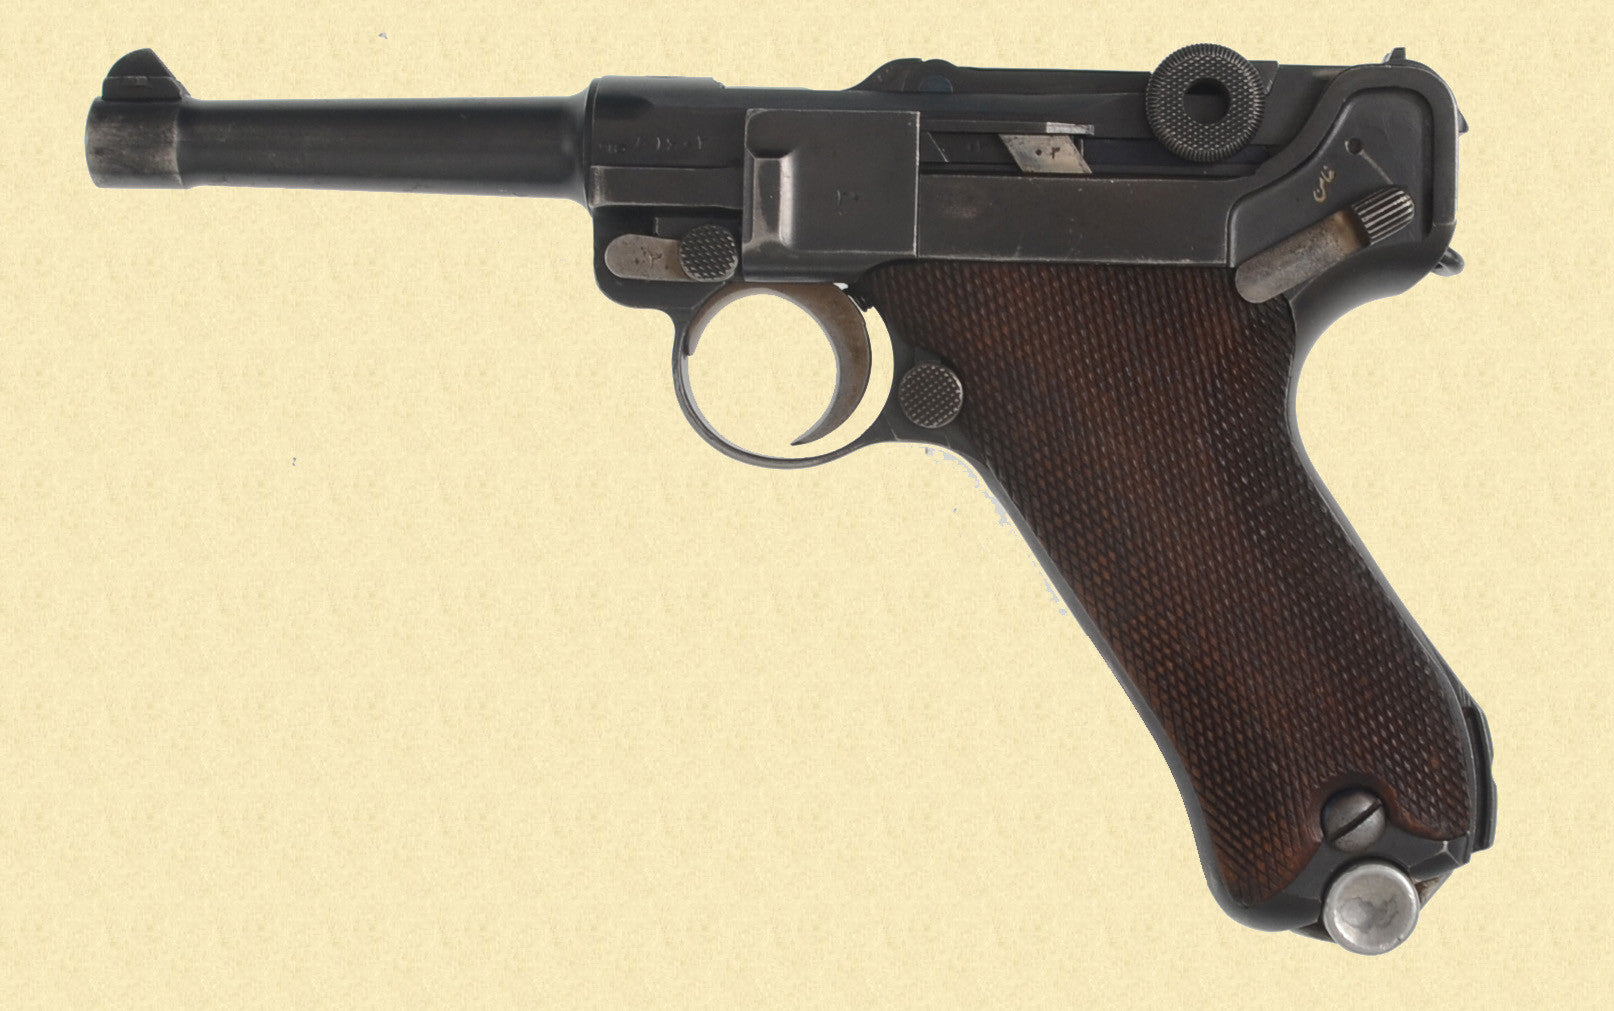 MAUSER P.08 PERSIAN CONTRACT